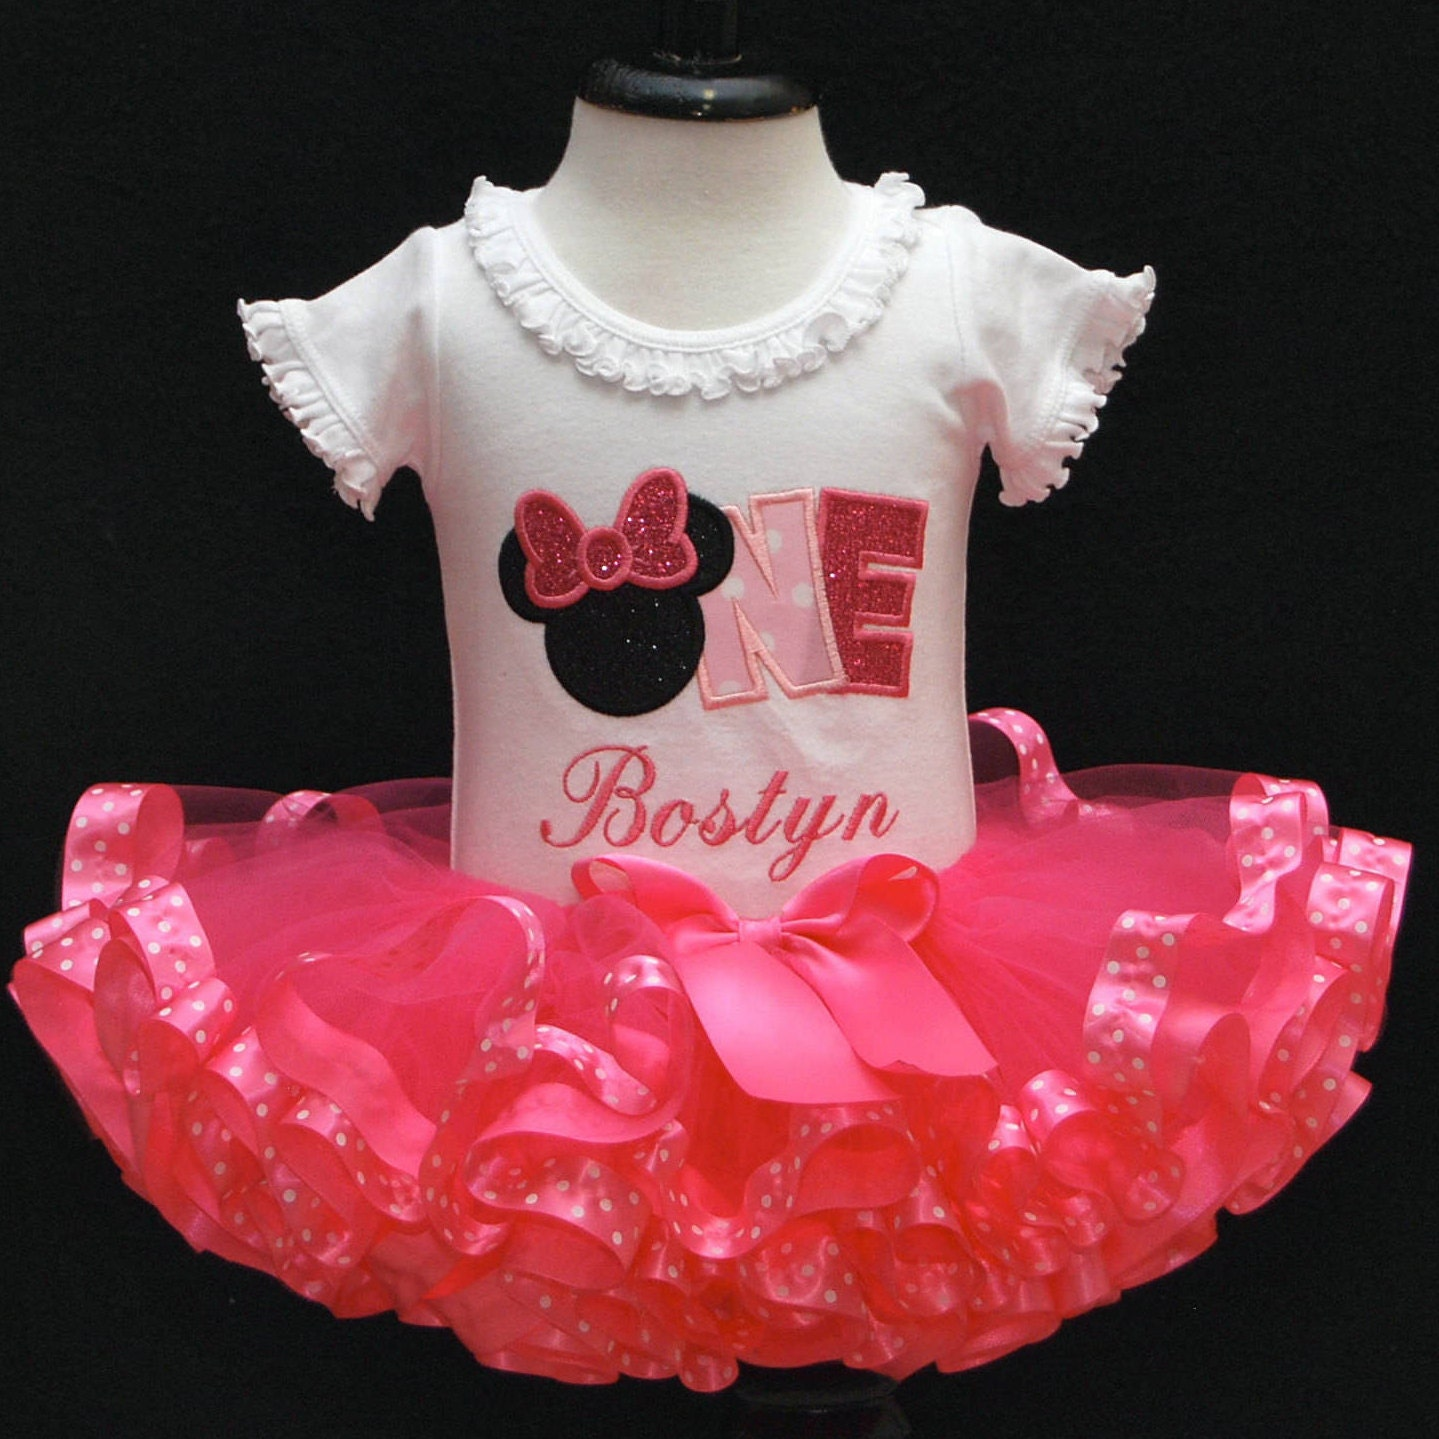 Birthday Tutu Outfits For Baby Girls Ribbon Trim Dress Flower Pink 0 2th 1st Girl Outfit Minnie Mouse Cake Smash First